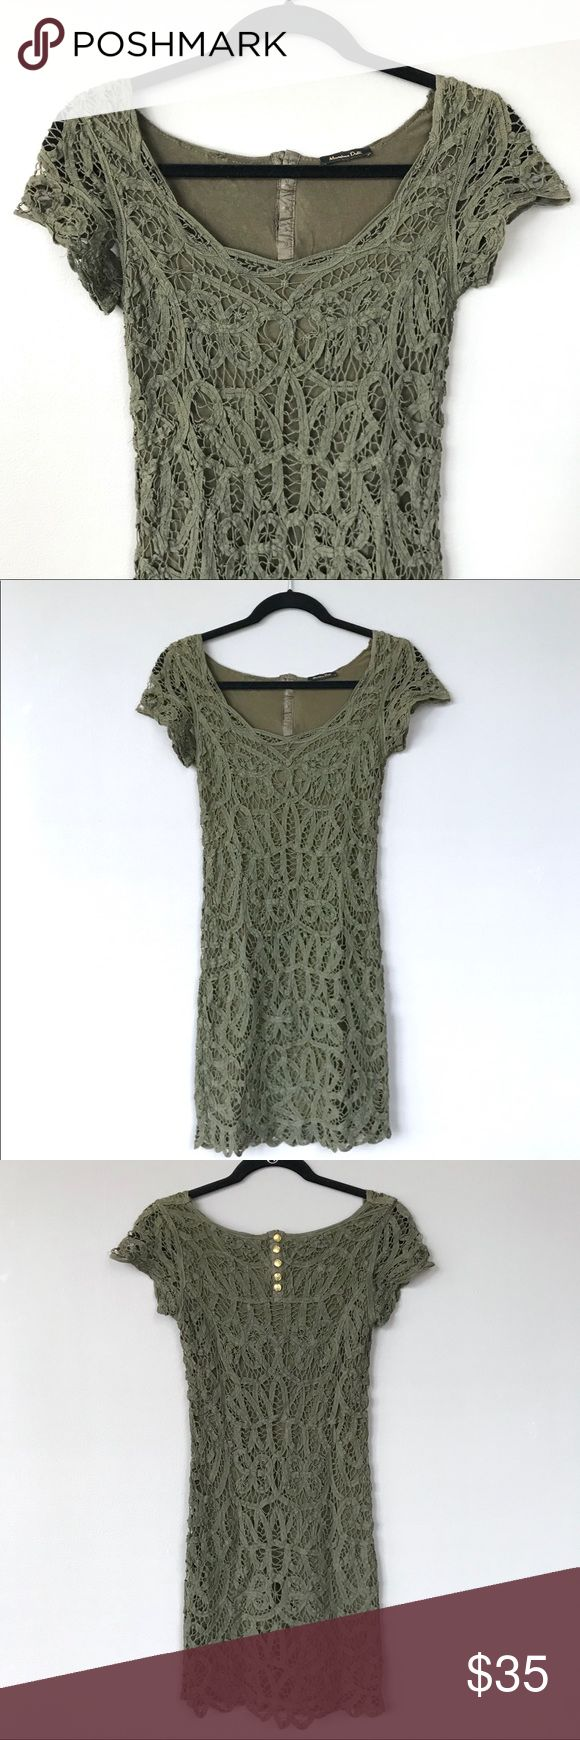 Massimo Dutti Olive Green Crochet-Style Dress Massimo Dutti Olive Green Crochet-Style Dress.  Size Small.  Cotton upper with viscose lining.  Cute buttons accent upper back area.  Very pretty dress, but runs small, closer to a size 0.  Pre-loved, but in very good condition. Massimo Dutti Dresses Mini